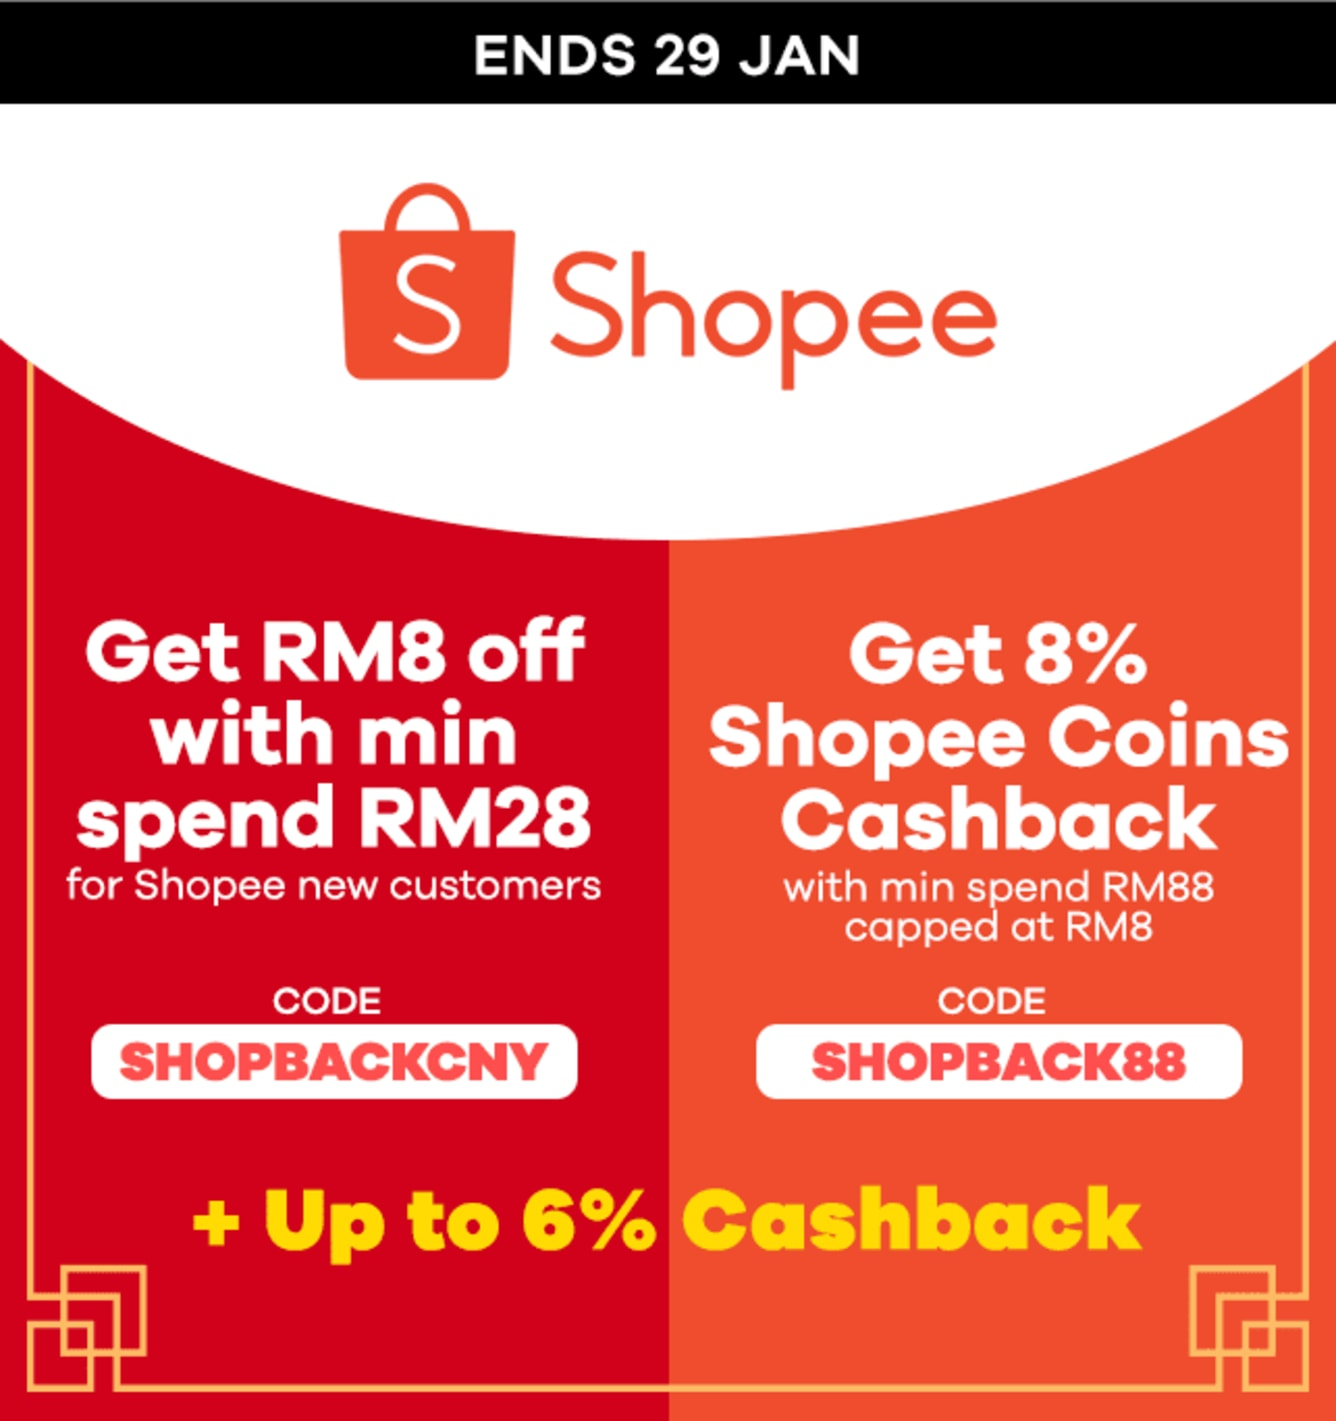 Shopee CNY Sale + Code